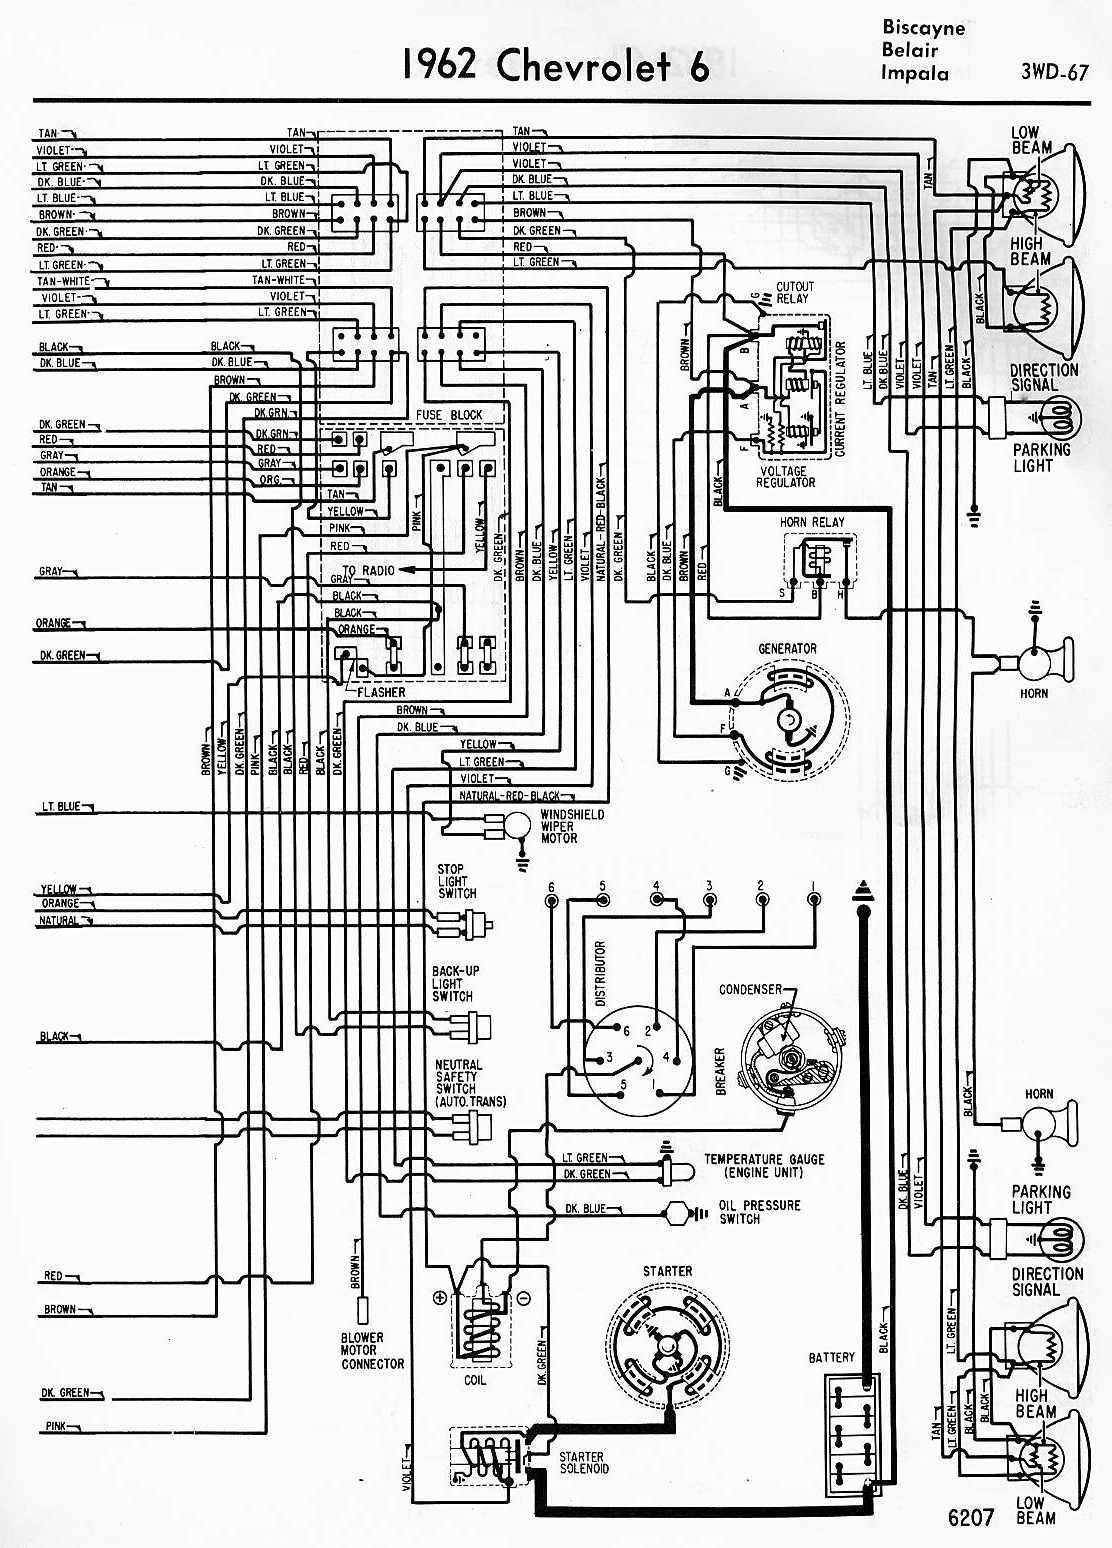 medium resolution of 55 chevy belair wiring diagram free picture wiring diagram source 64 chevy wiring diagram 55 chevy belair wiring diagram free picture